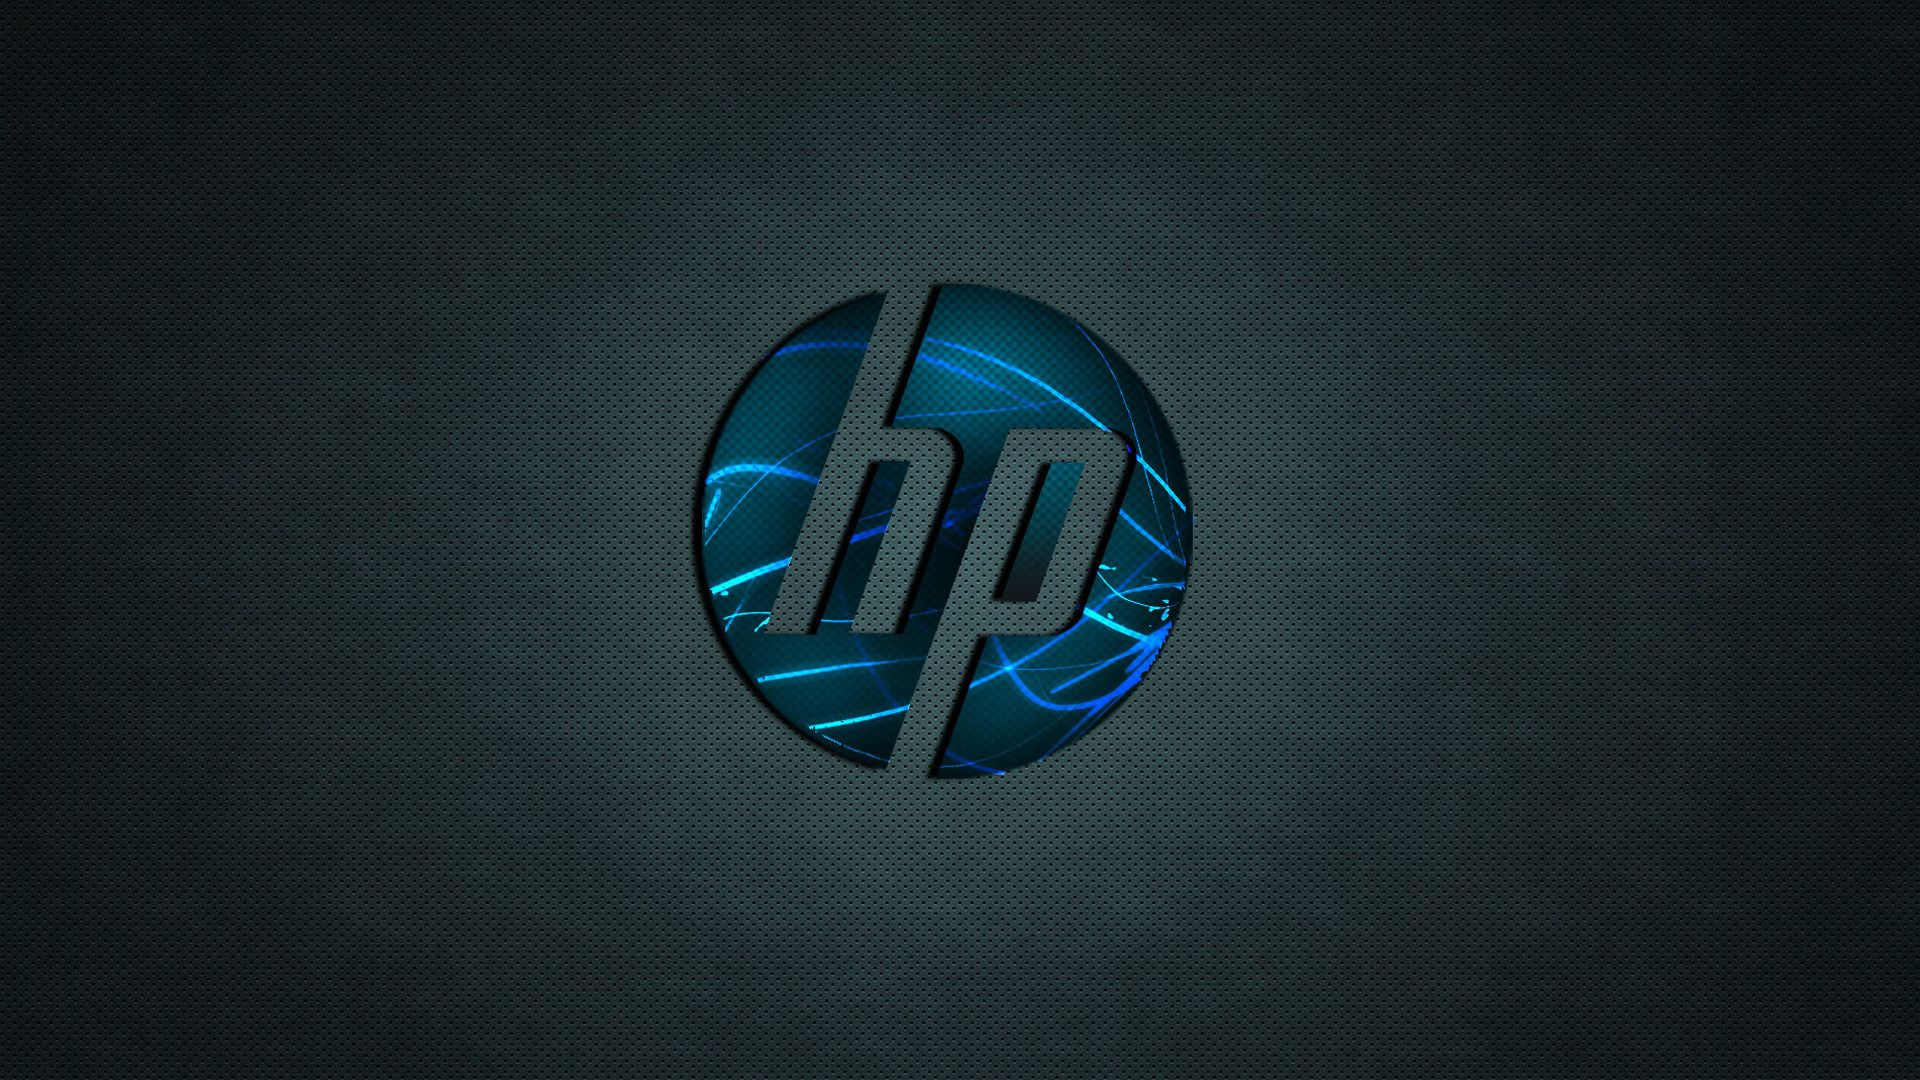 hp wallpapers for windows 7